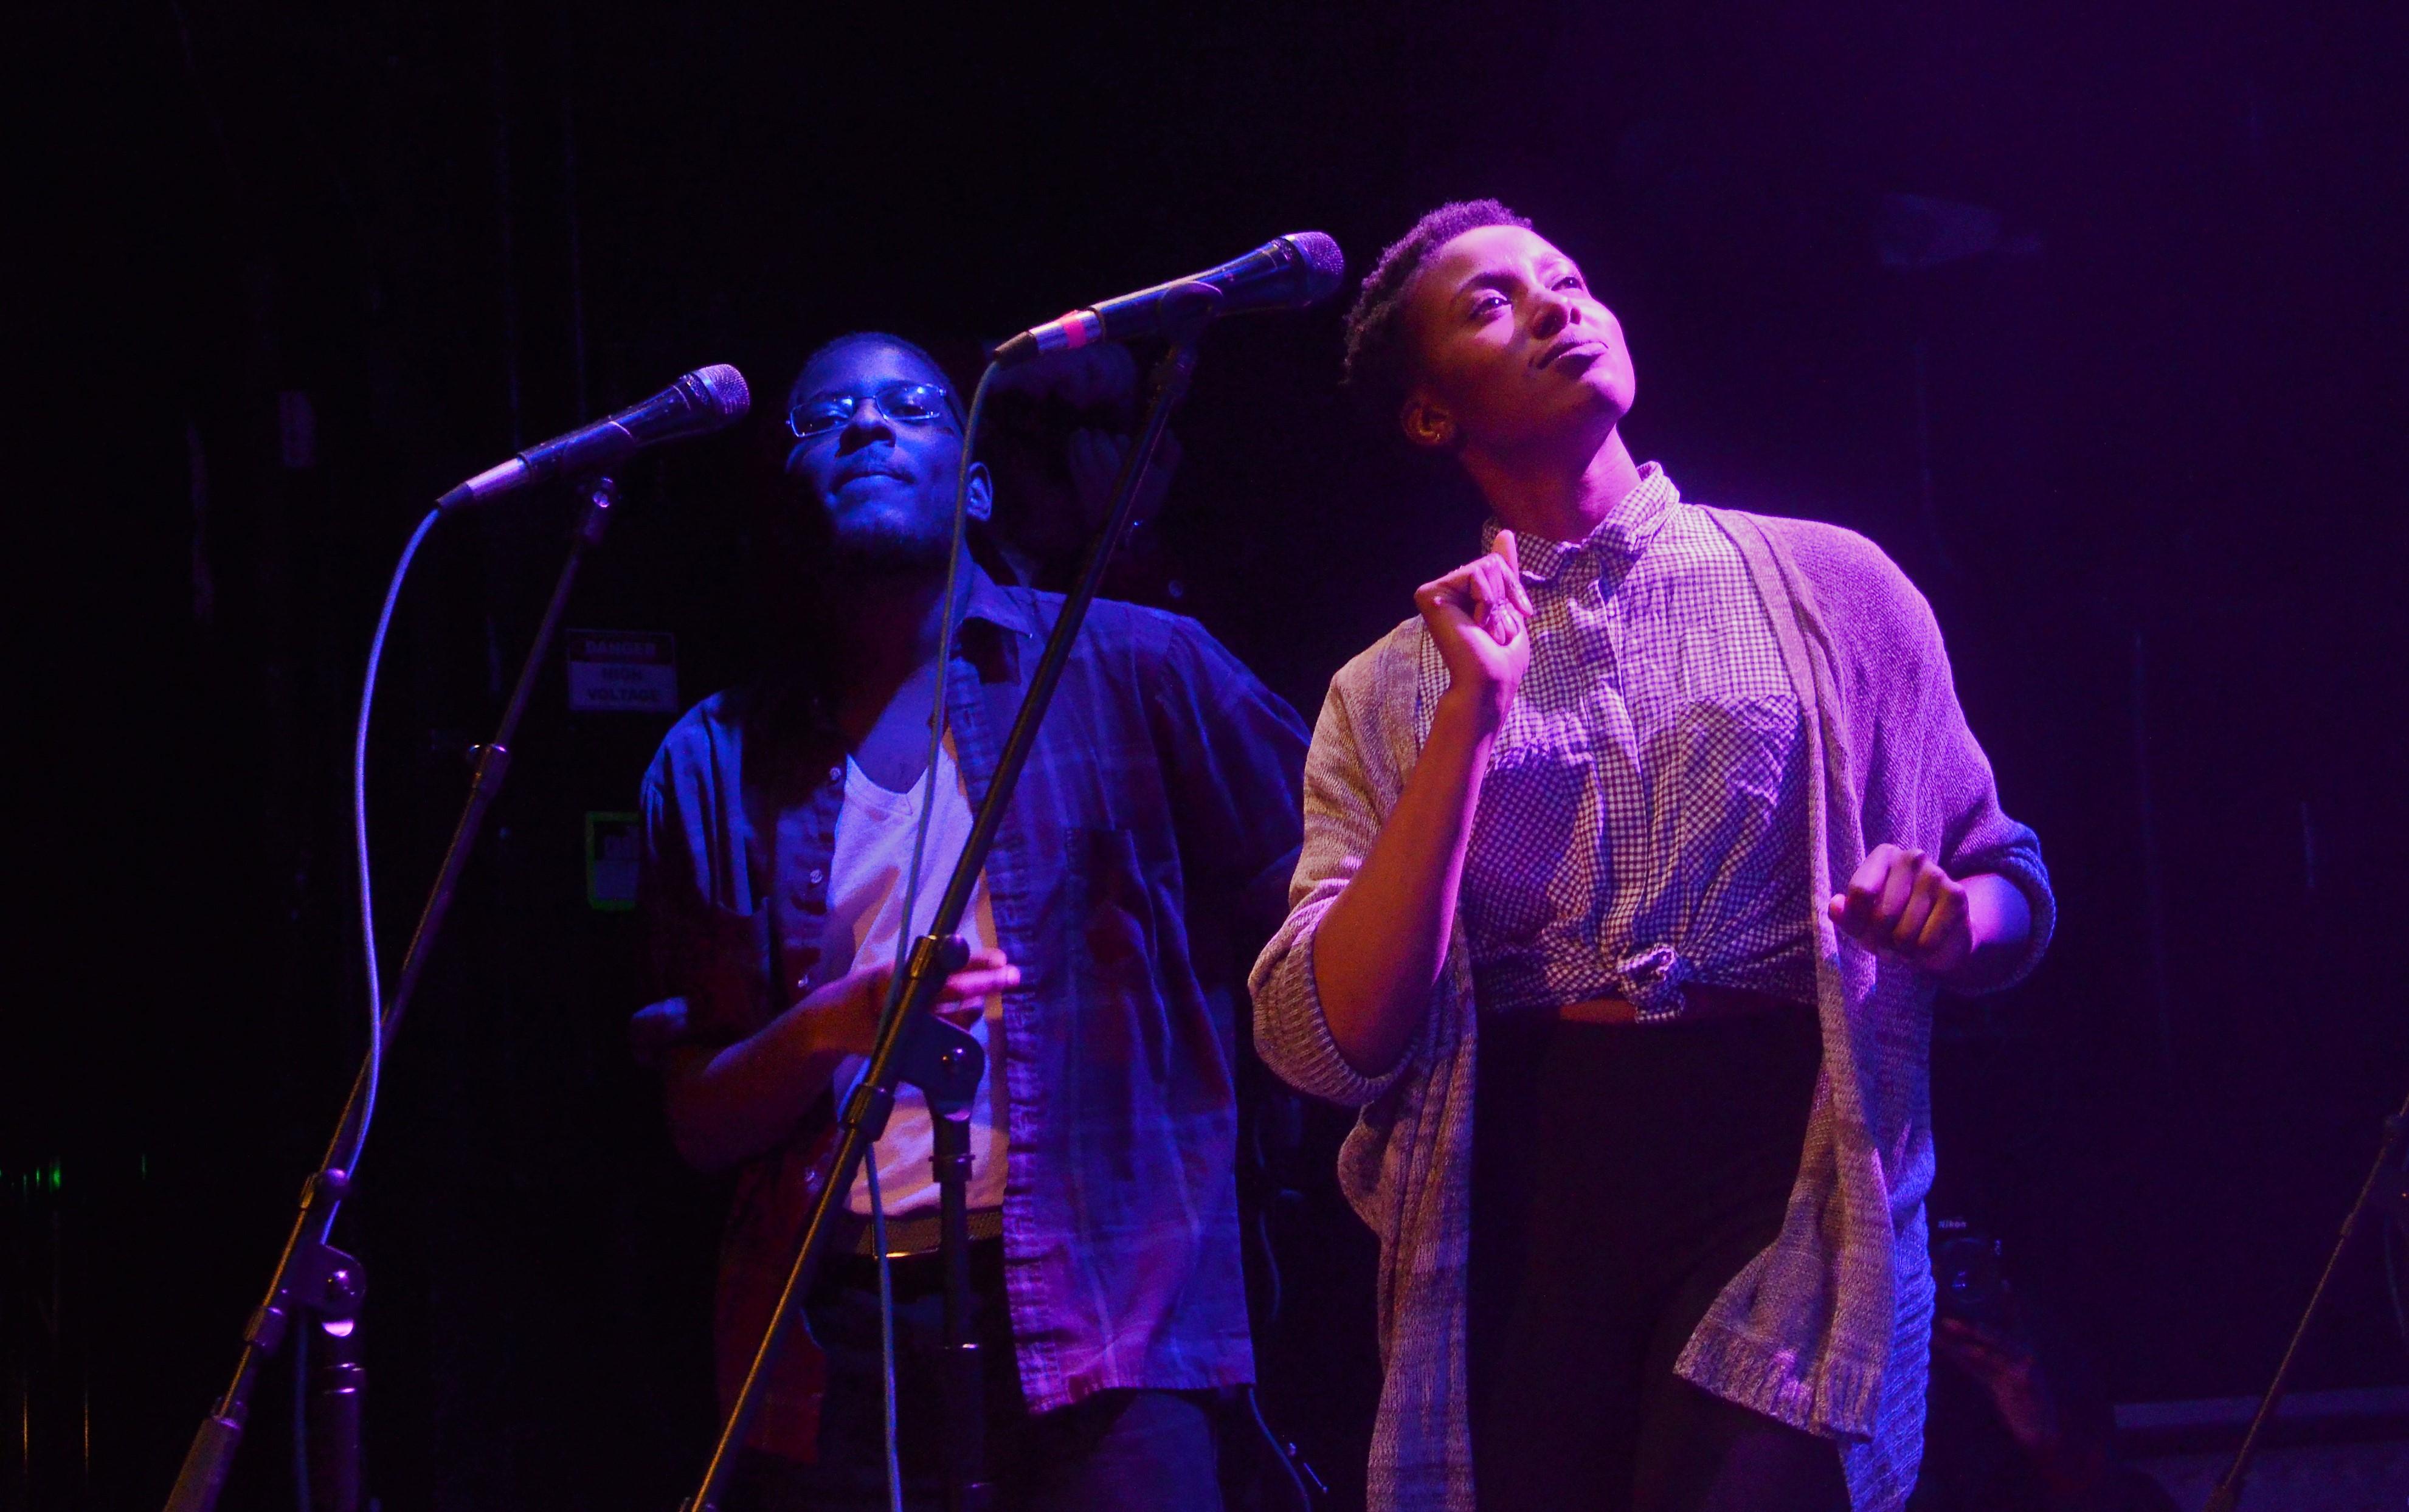 Ruth Onyirimba and Tony Motown adding some flare to Phat A$tronaut's set with their backing vocals.